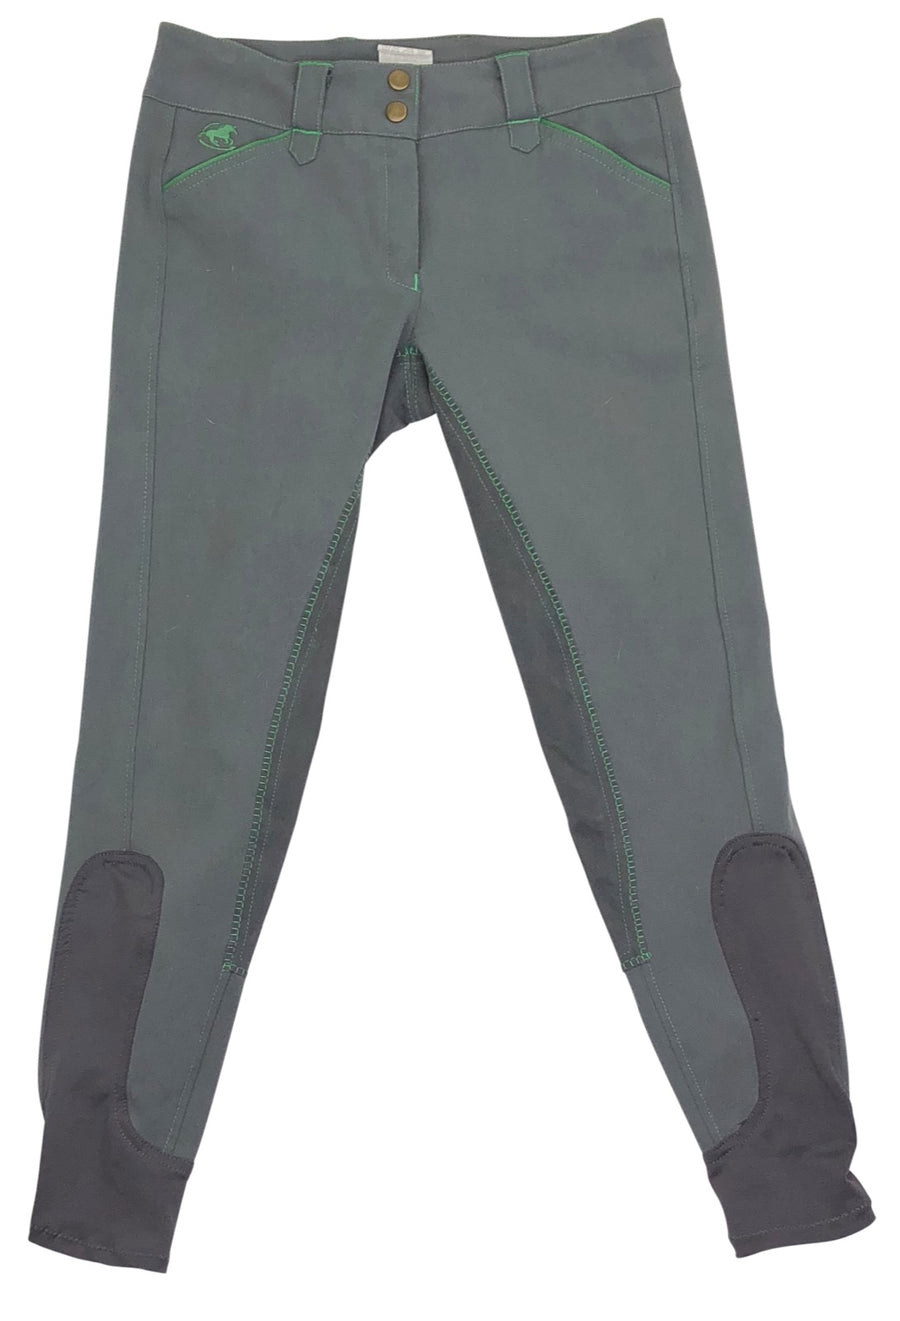 SmartPak Piper Full Seat Breeches in Charcoal and Sage